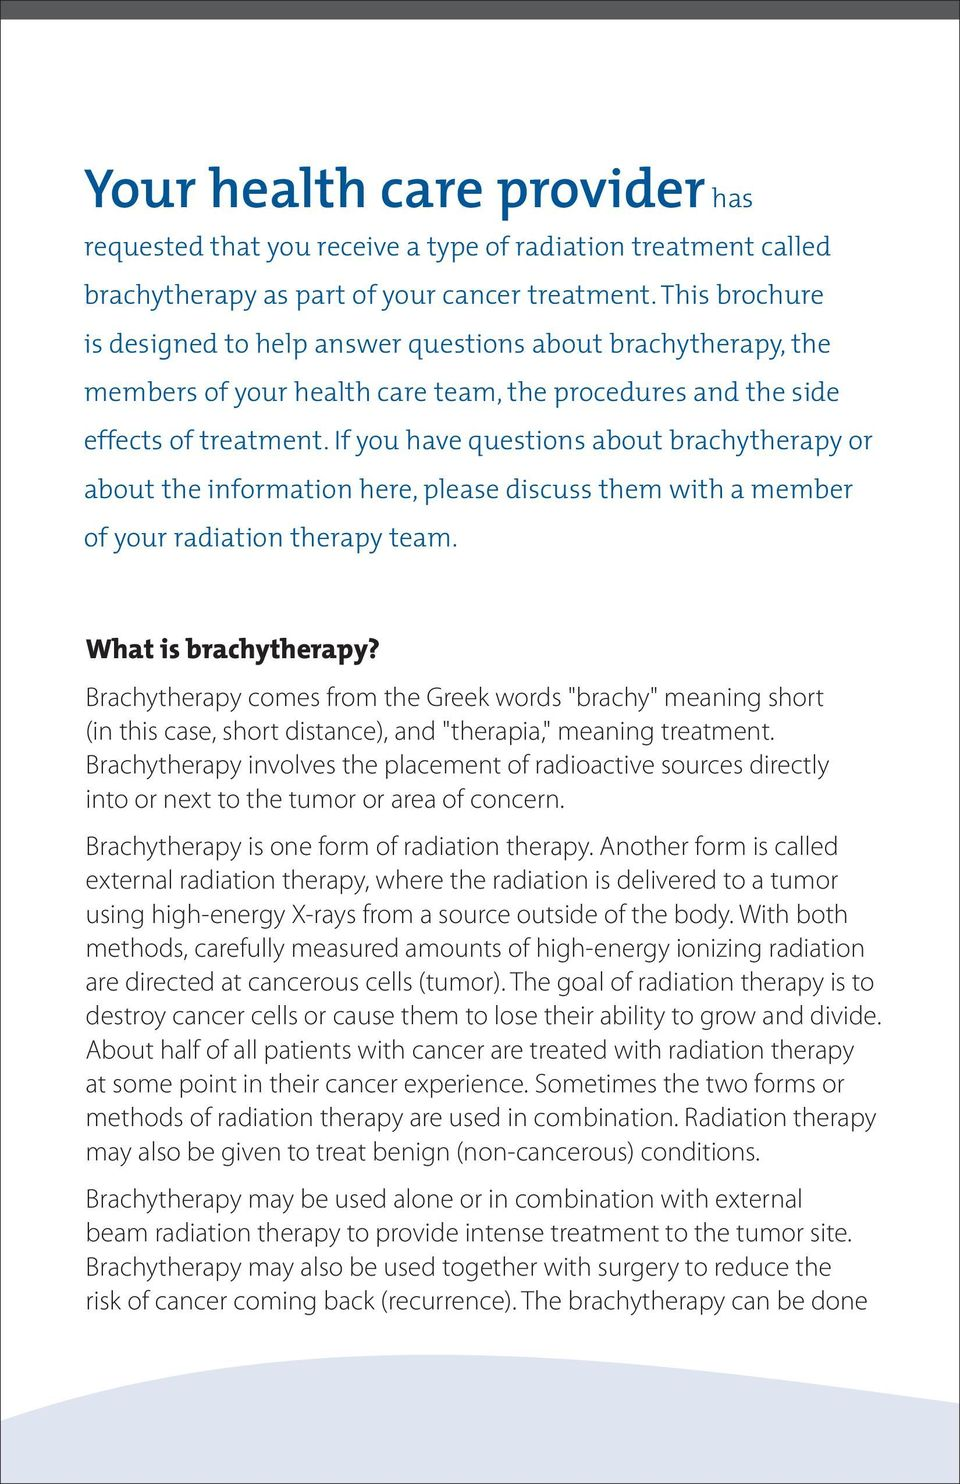 If you have questions about brachytherapy or about the information here, please discuss them with a member of your radiation therapy team. What is brachytherapy?